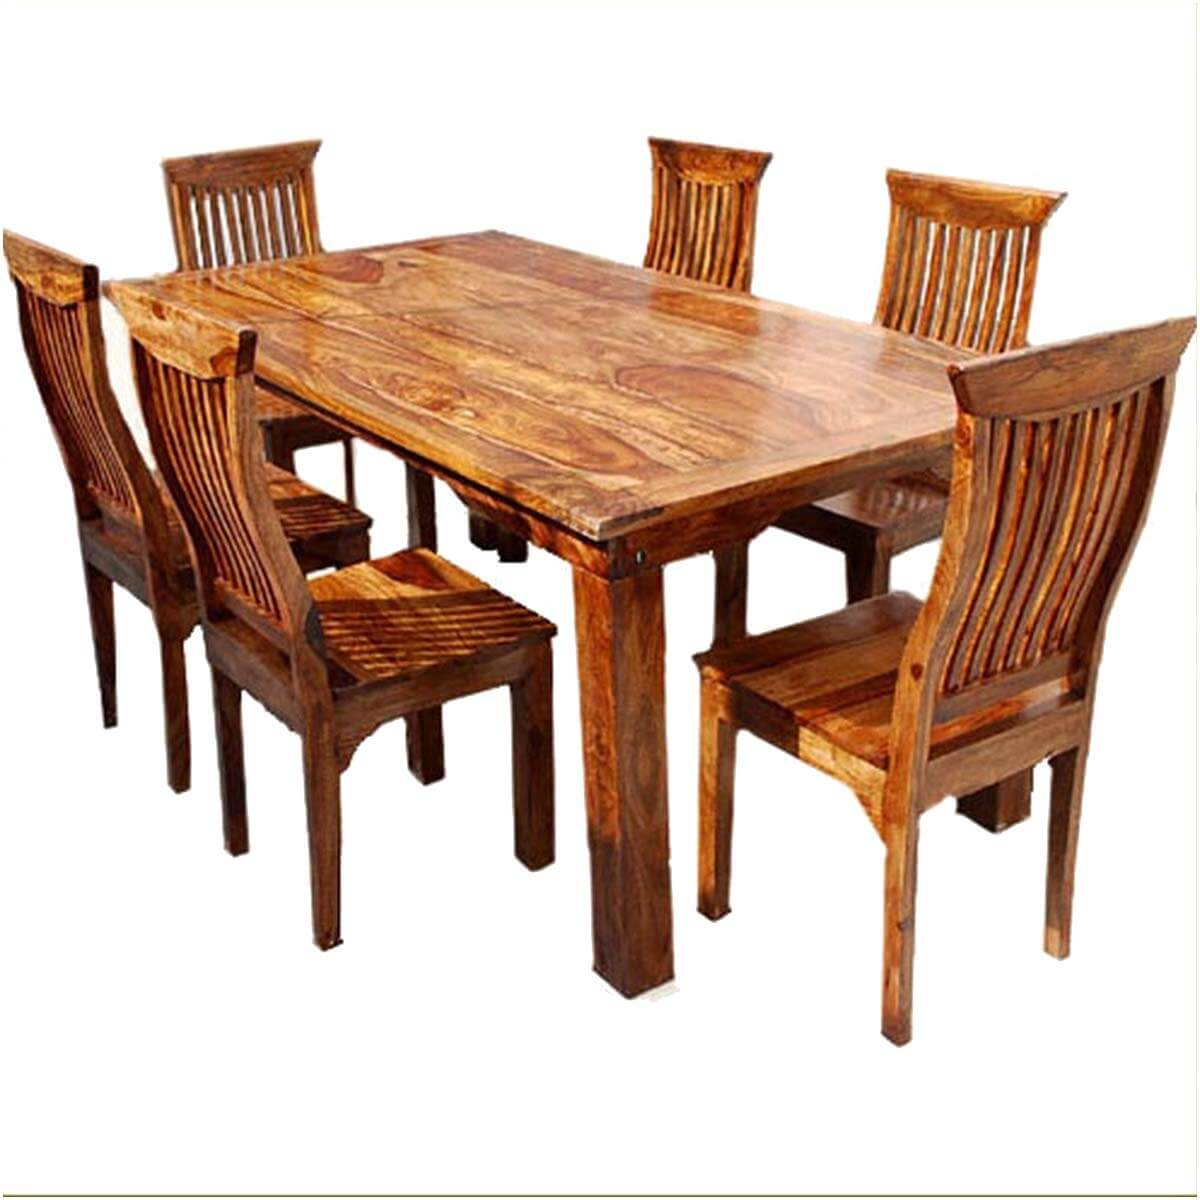 Solid Wood Dining Room Tables ~ Dallas ranch solid wood rustic dining table chairs hutch set